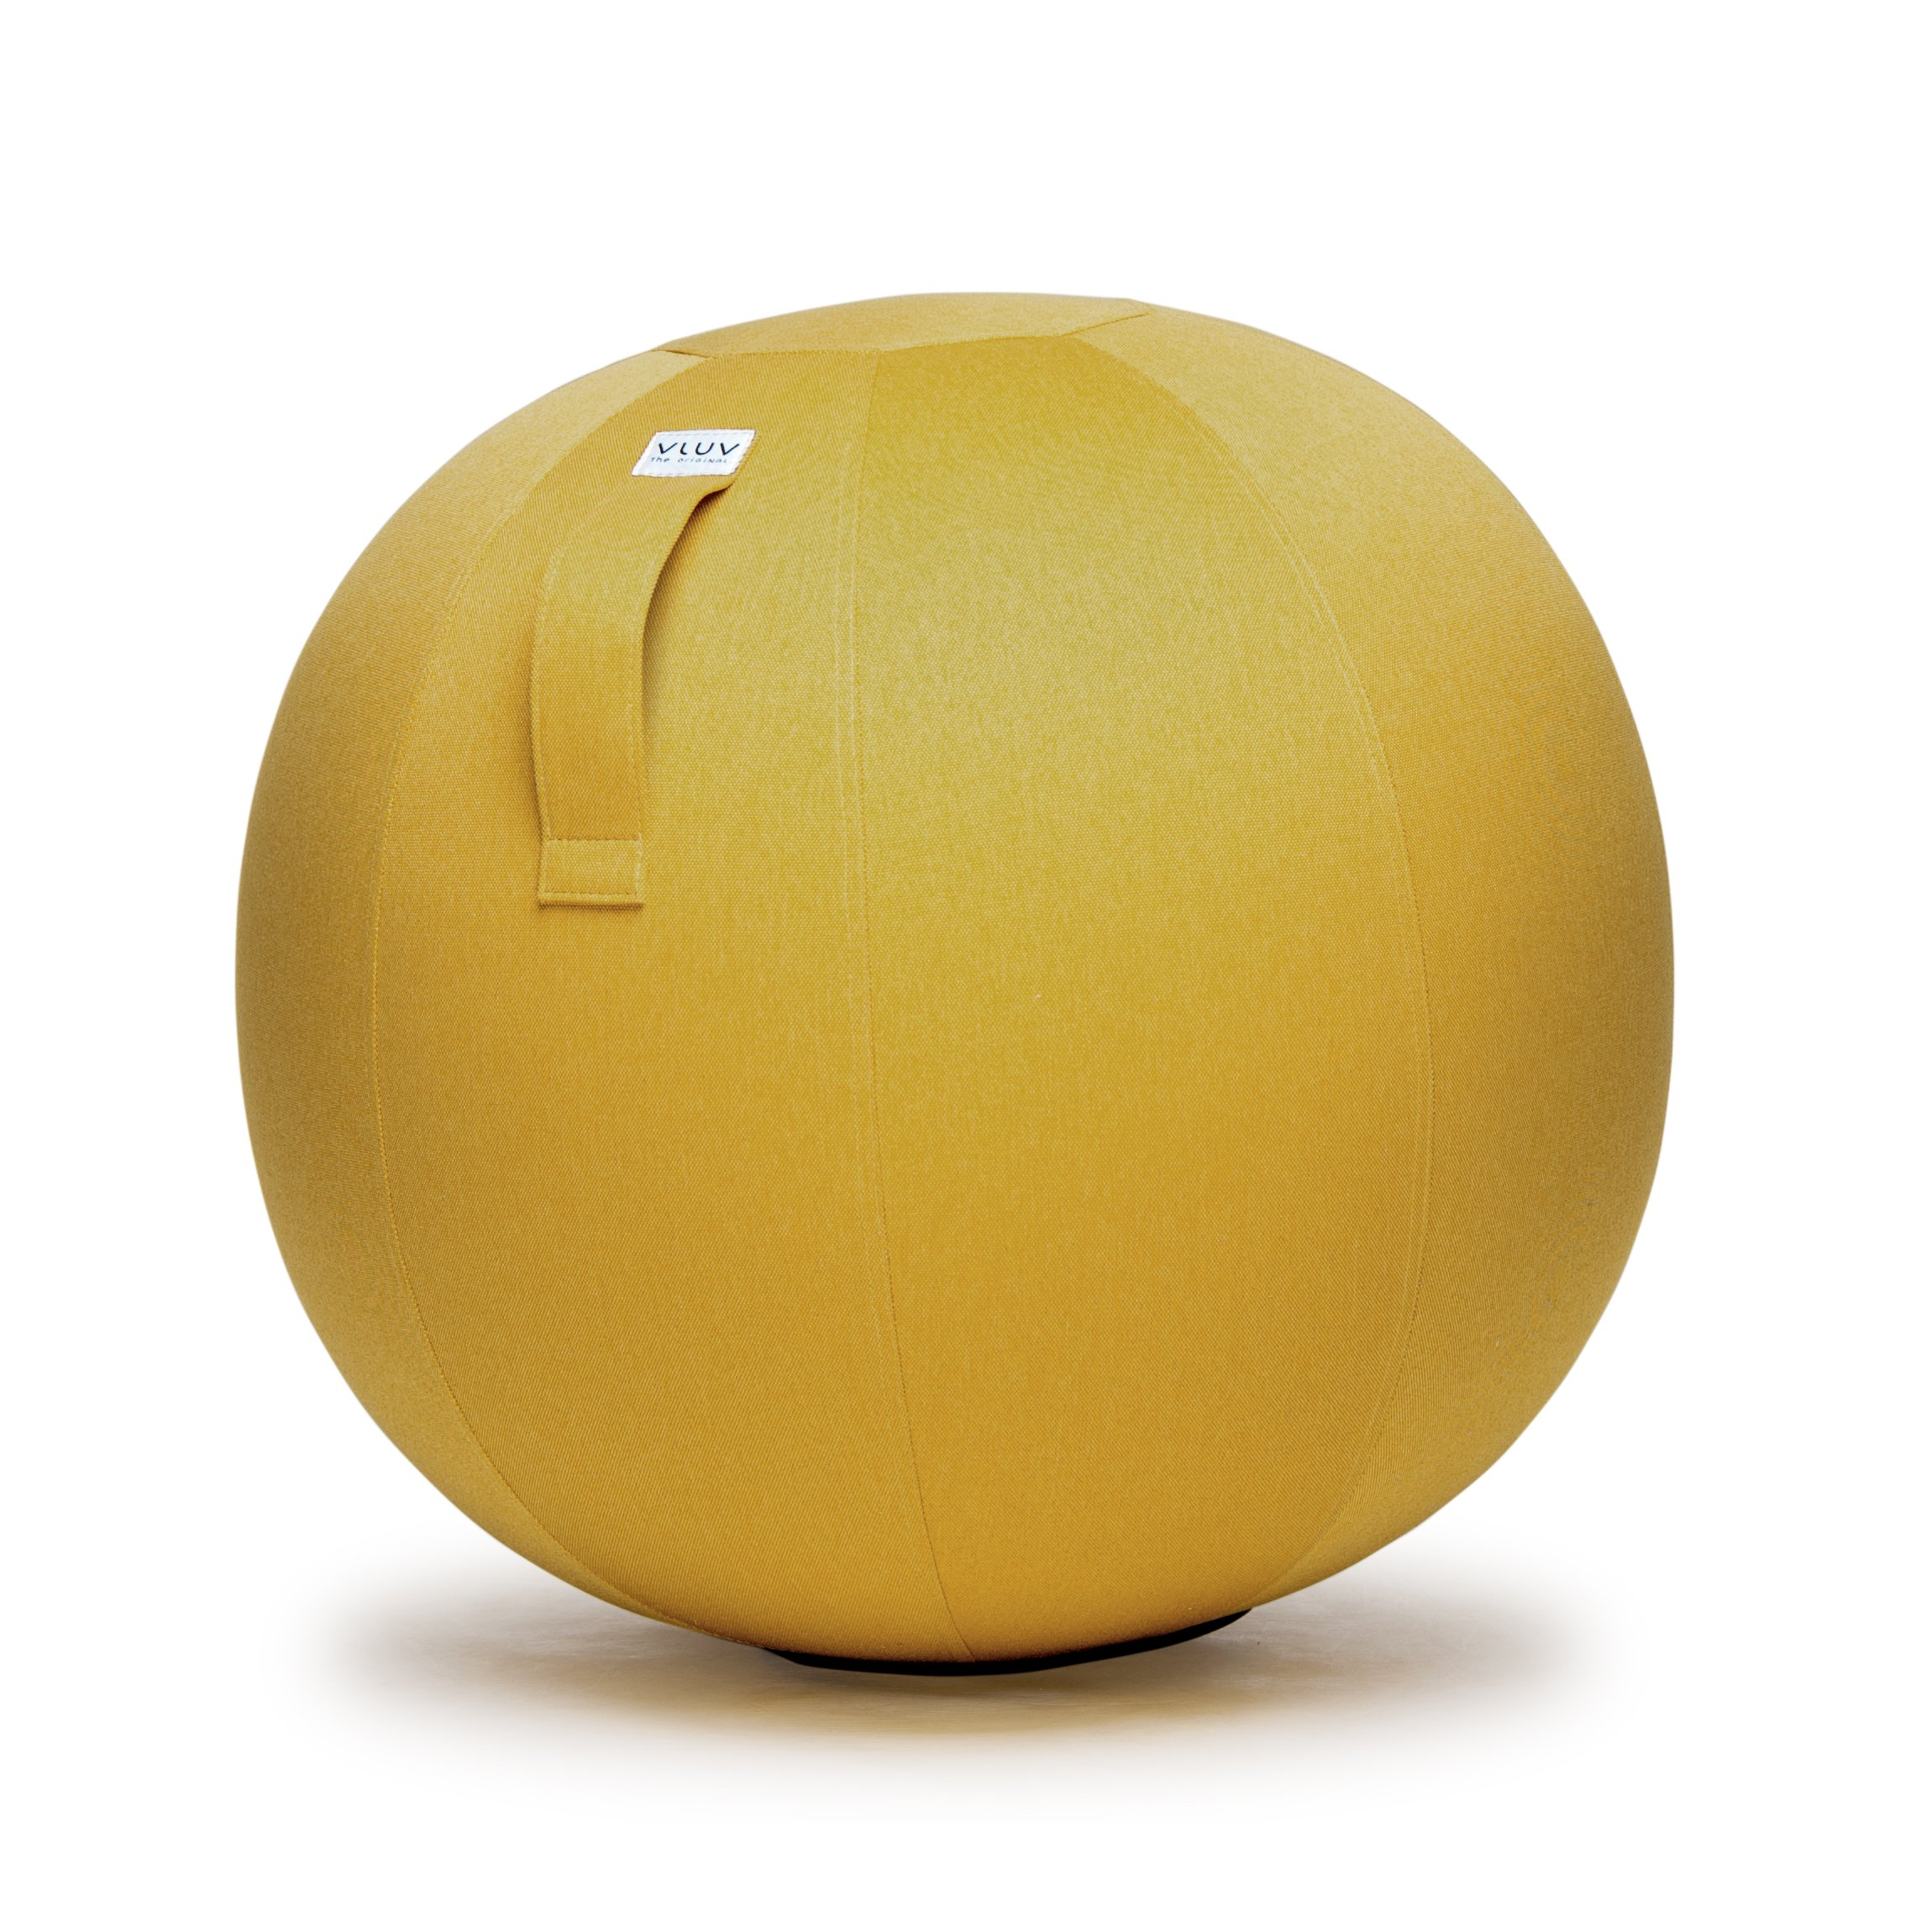 VLUV LEIV 29.5'' Premium Quality Self-Standing Sitting Ball with Handle - Home or Office Chair and Exercise Ball for Yoga, Stretching, or Gym Stone Colored Canvas Fabric (Mustard Colored, 25.6'') by VLUV